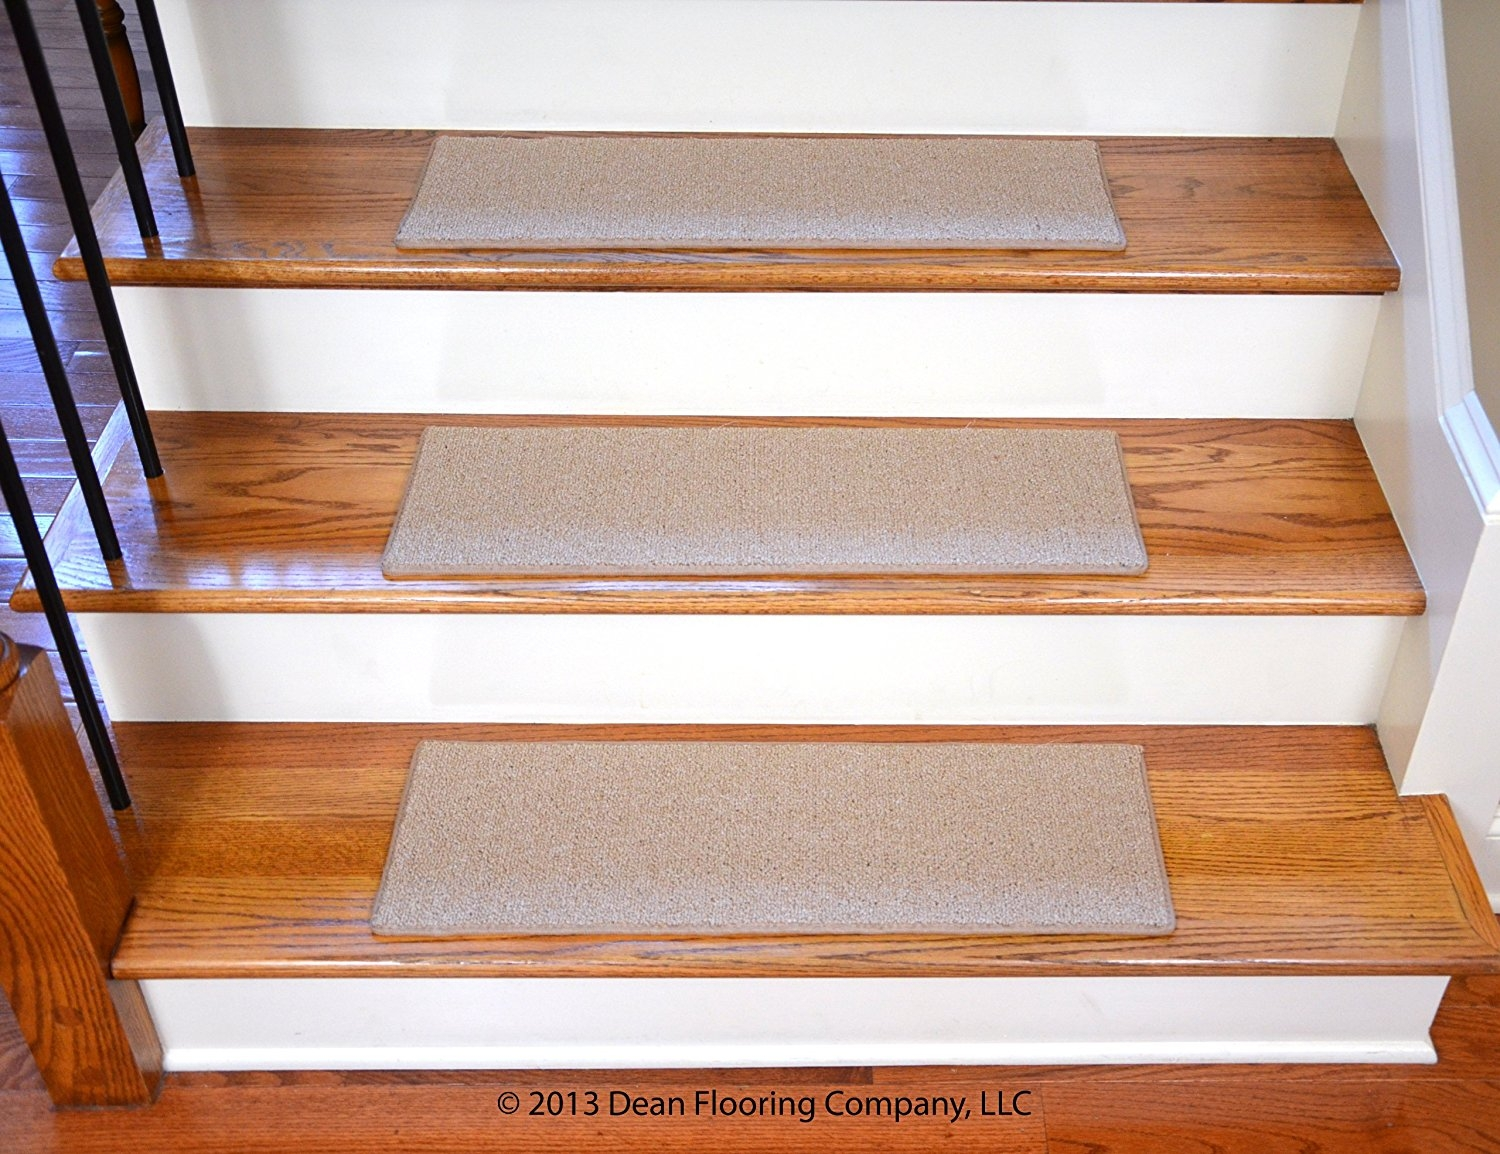 Dean Non Slip Tape Free Pet Friendly Diy Carpet Stair Treadsrugs With Adhesive Carpet Stair Treads (View 7 of 20)